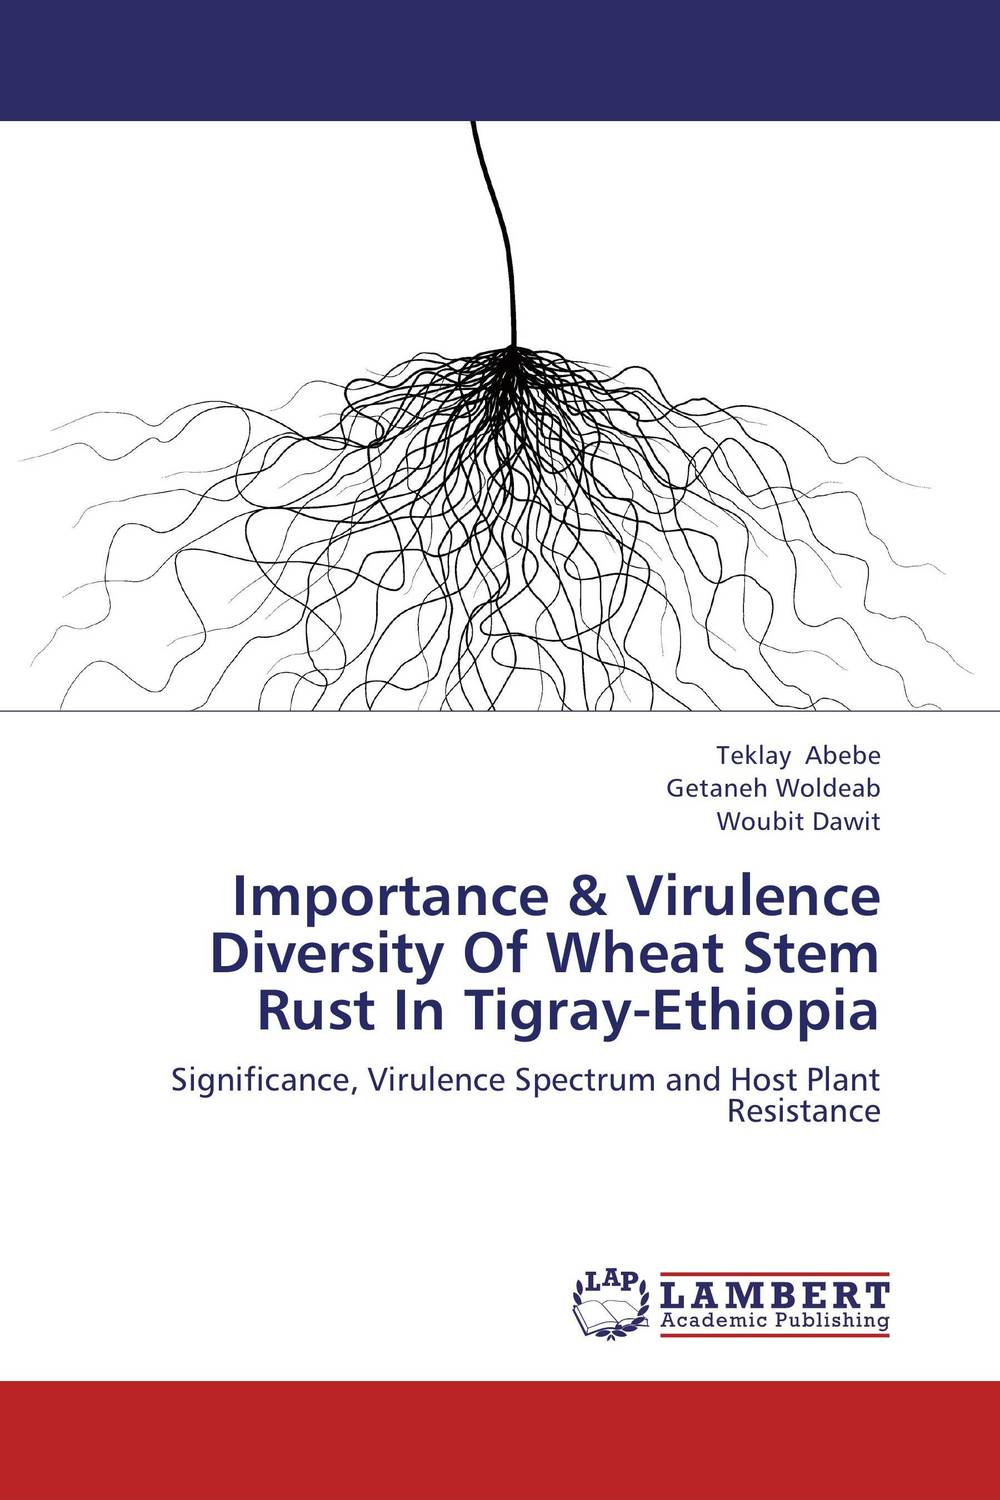 Importance & Virulence Diversity Of Wheat Stem Rust In Tigray-Ethiopia genetic variation for stem rust resistance in spring wheat